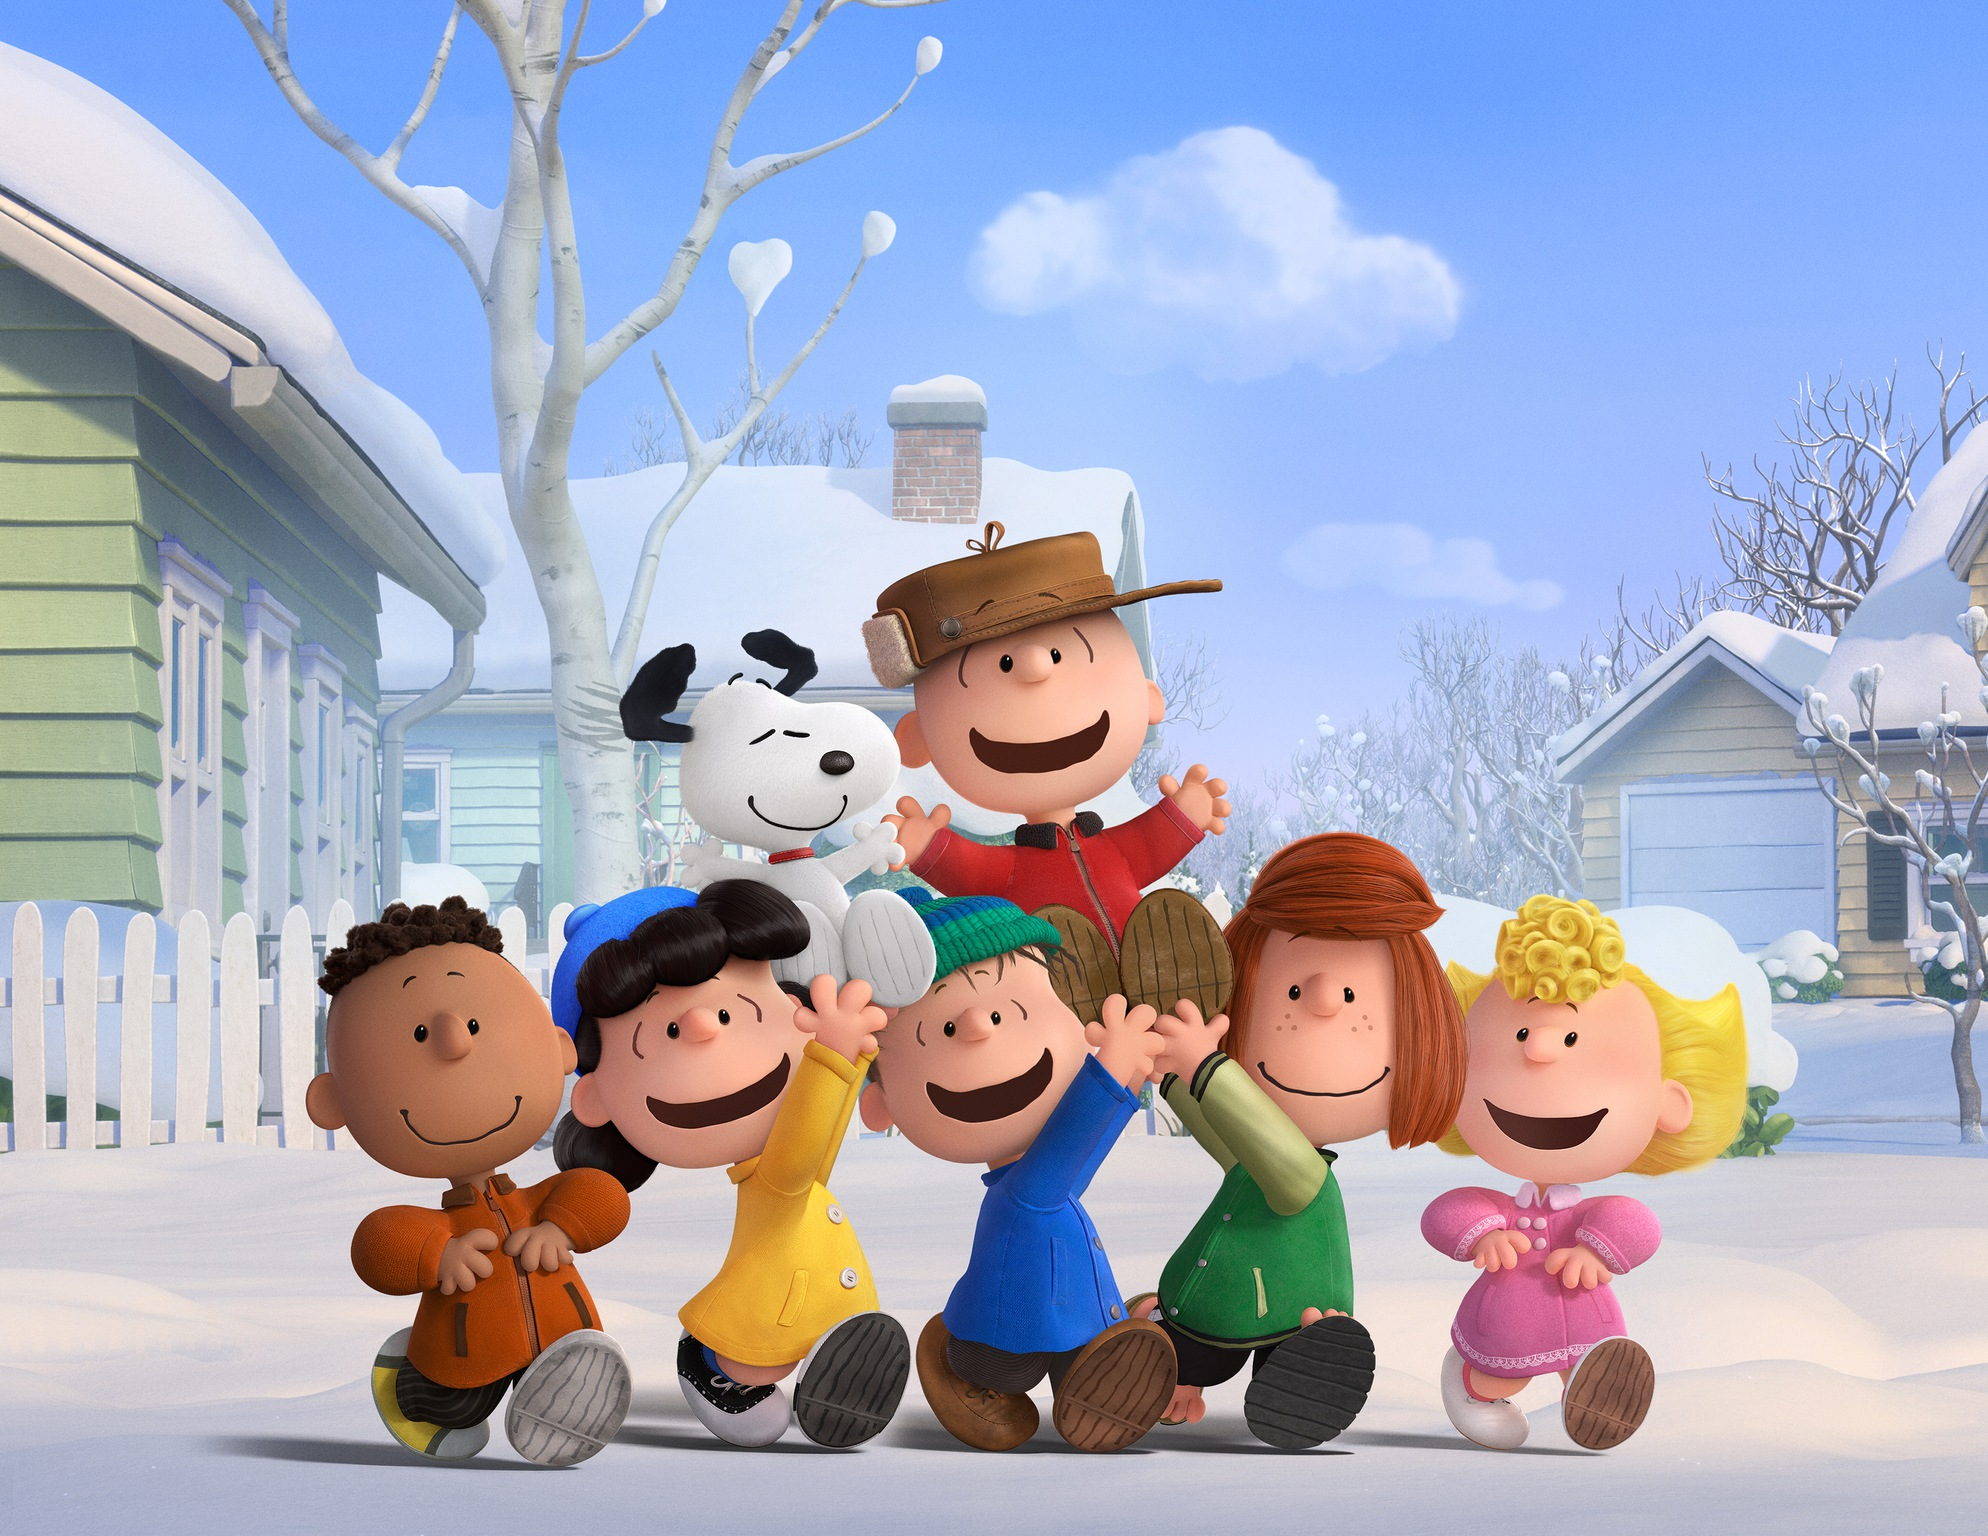 Snoopy: The peanuts movie